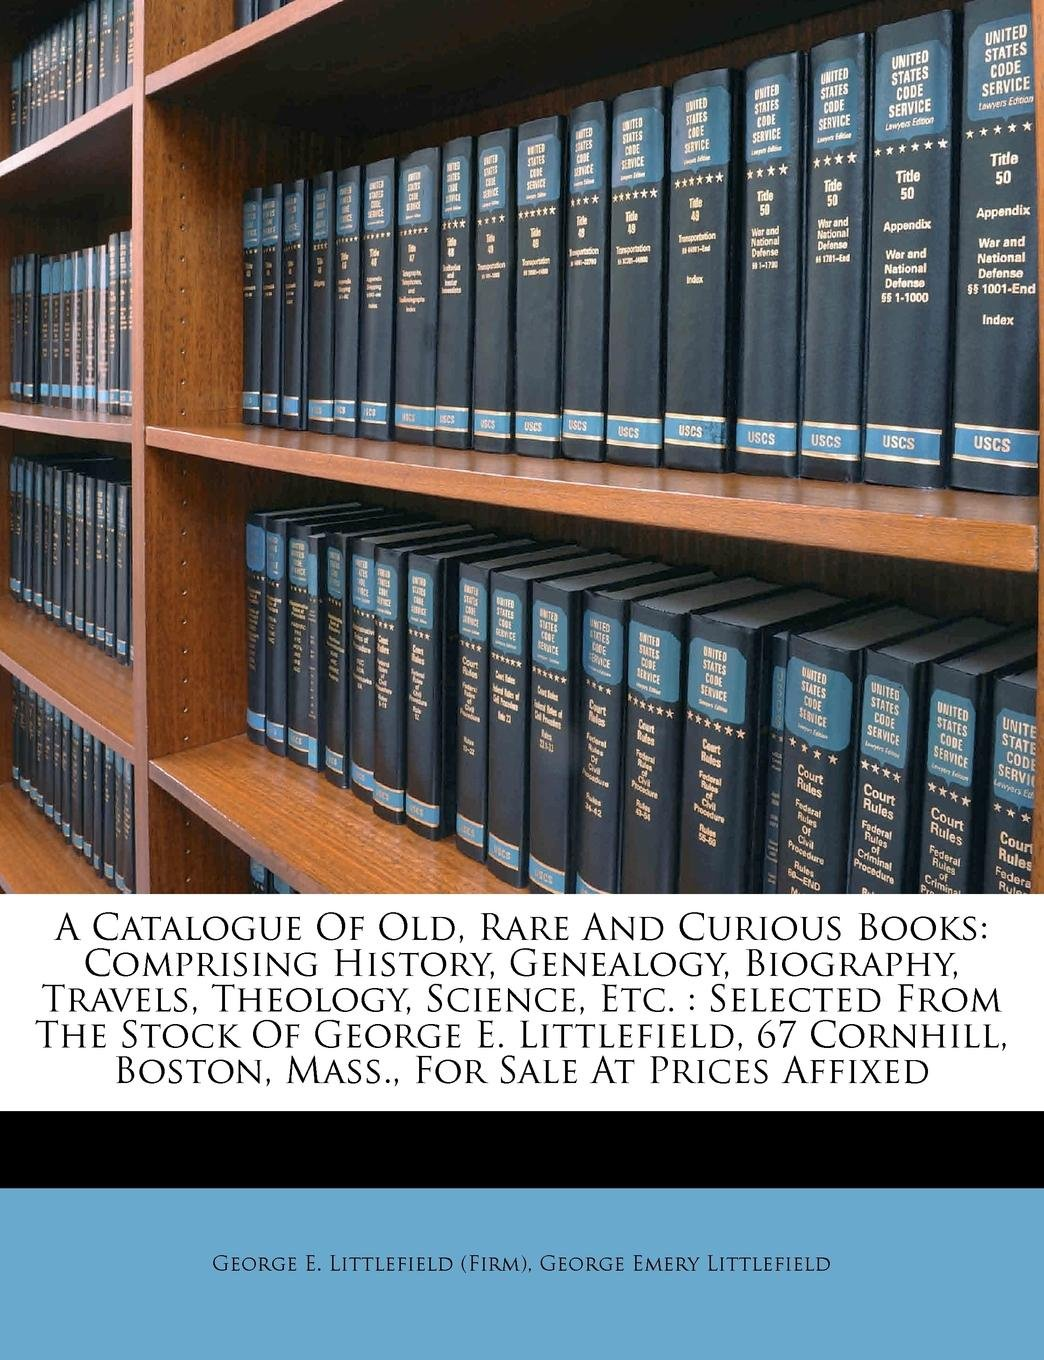 Read Online A Catalogue Of Old, Rare And Curious Books: Comprising History, Genealogy, Biography, Travels, Theology, Science, Etc. : Selected From The Stock Of ... Sale At Prices Affixed (Afrikaans Edition) pdf epub